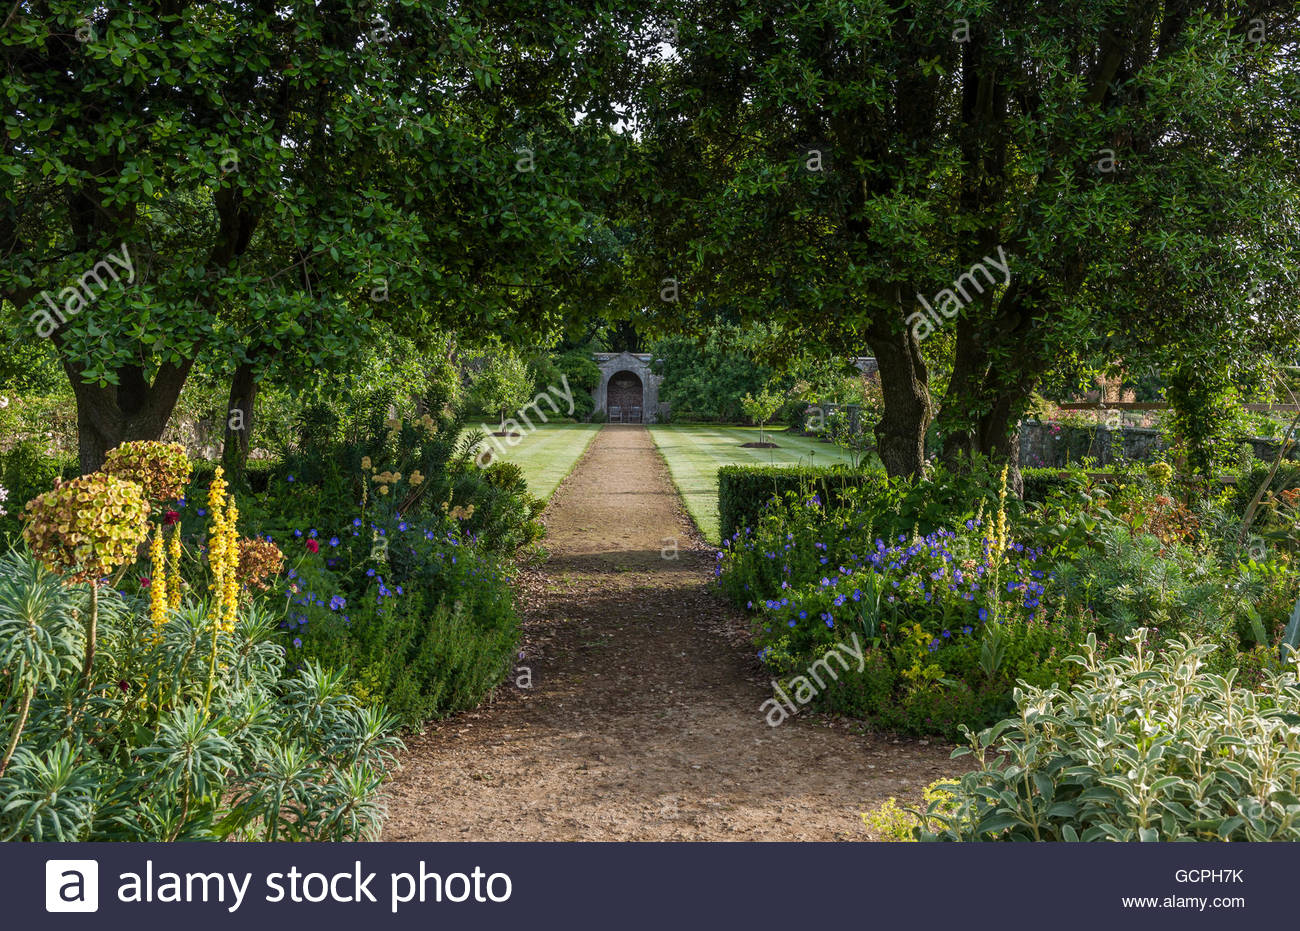 garden flowers and summer borders - Stock Image